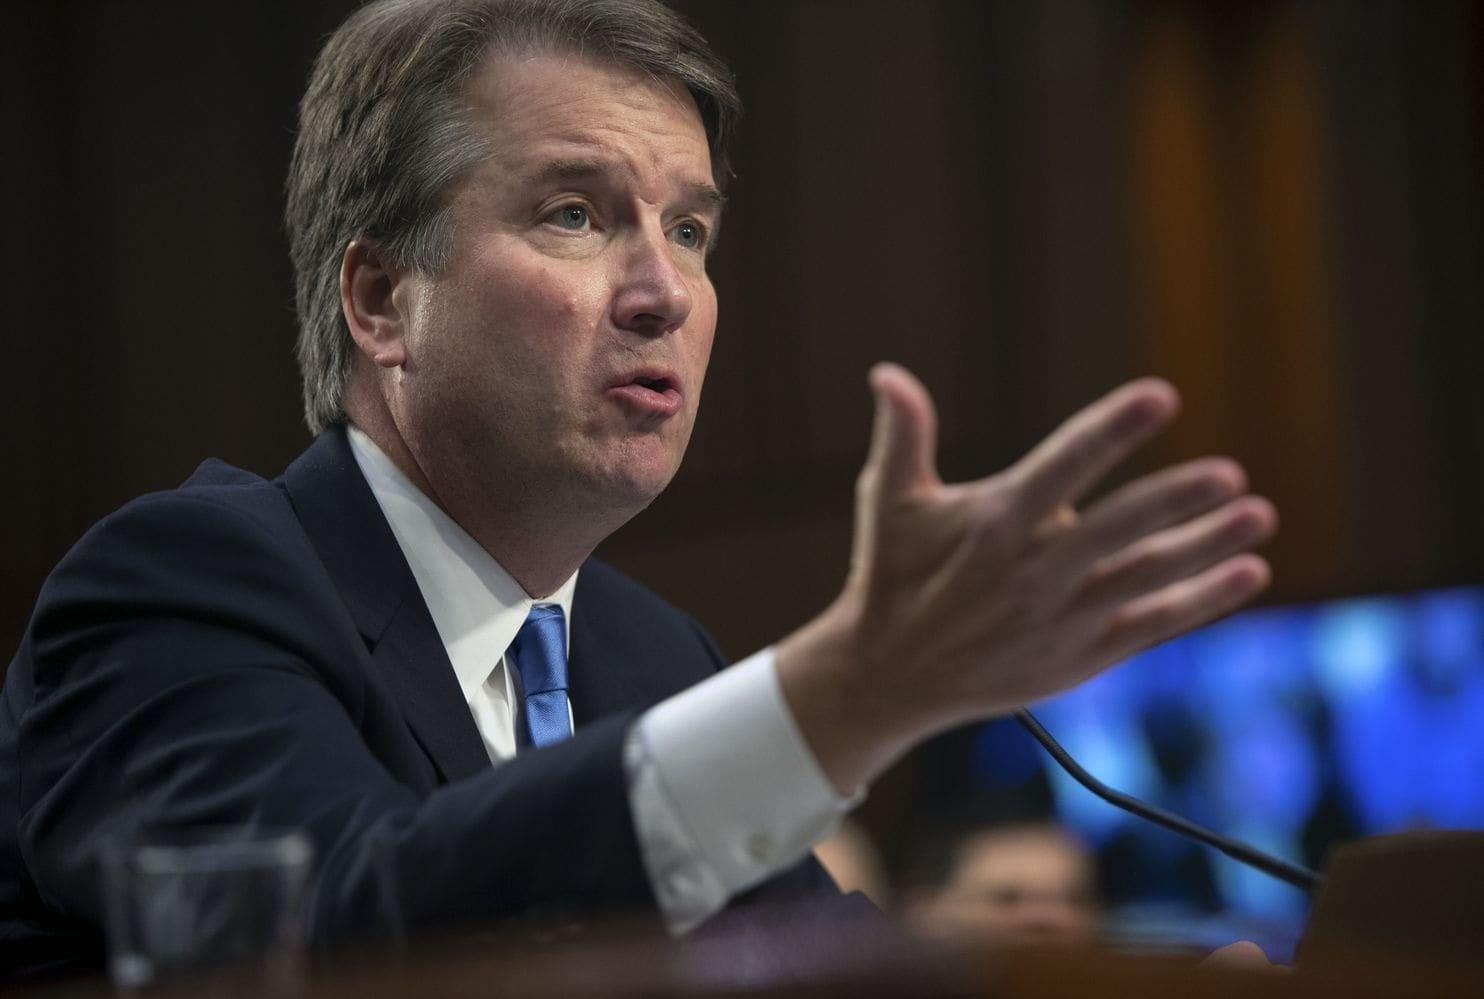 An alt-right Twitter account leaked the address of Kavanaugh's accuser. It's not the first time.